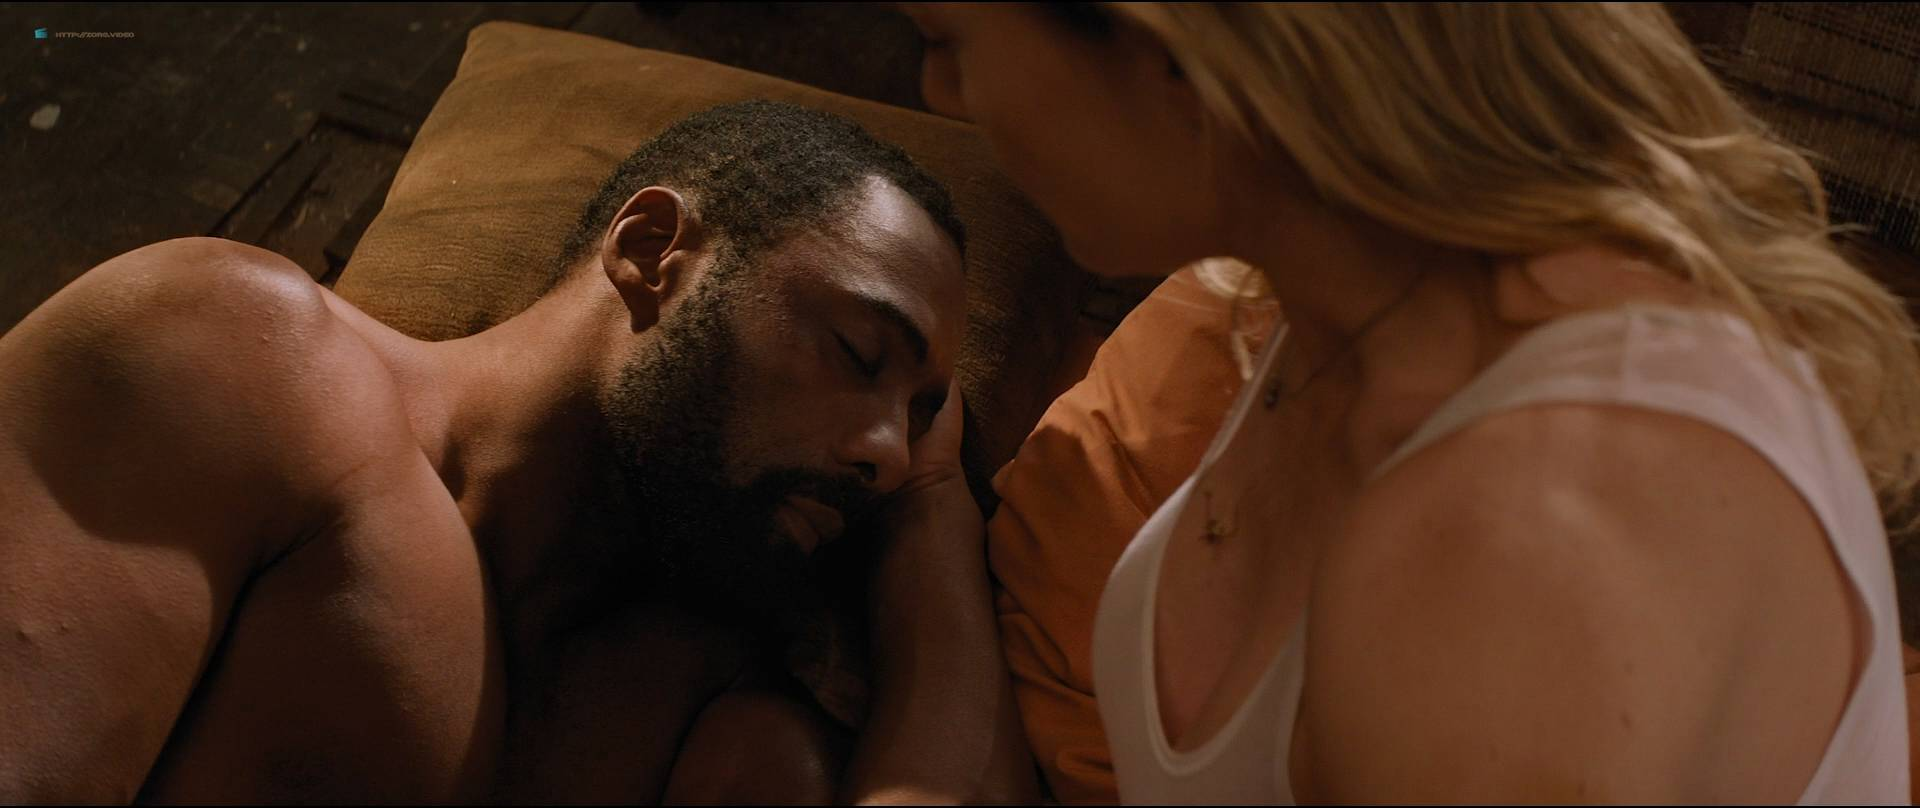 Kate-Winslet-hot-and-some-sex-The-Mountain-Between-Us-2017-HD-1080p-BluRay-10.jpg